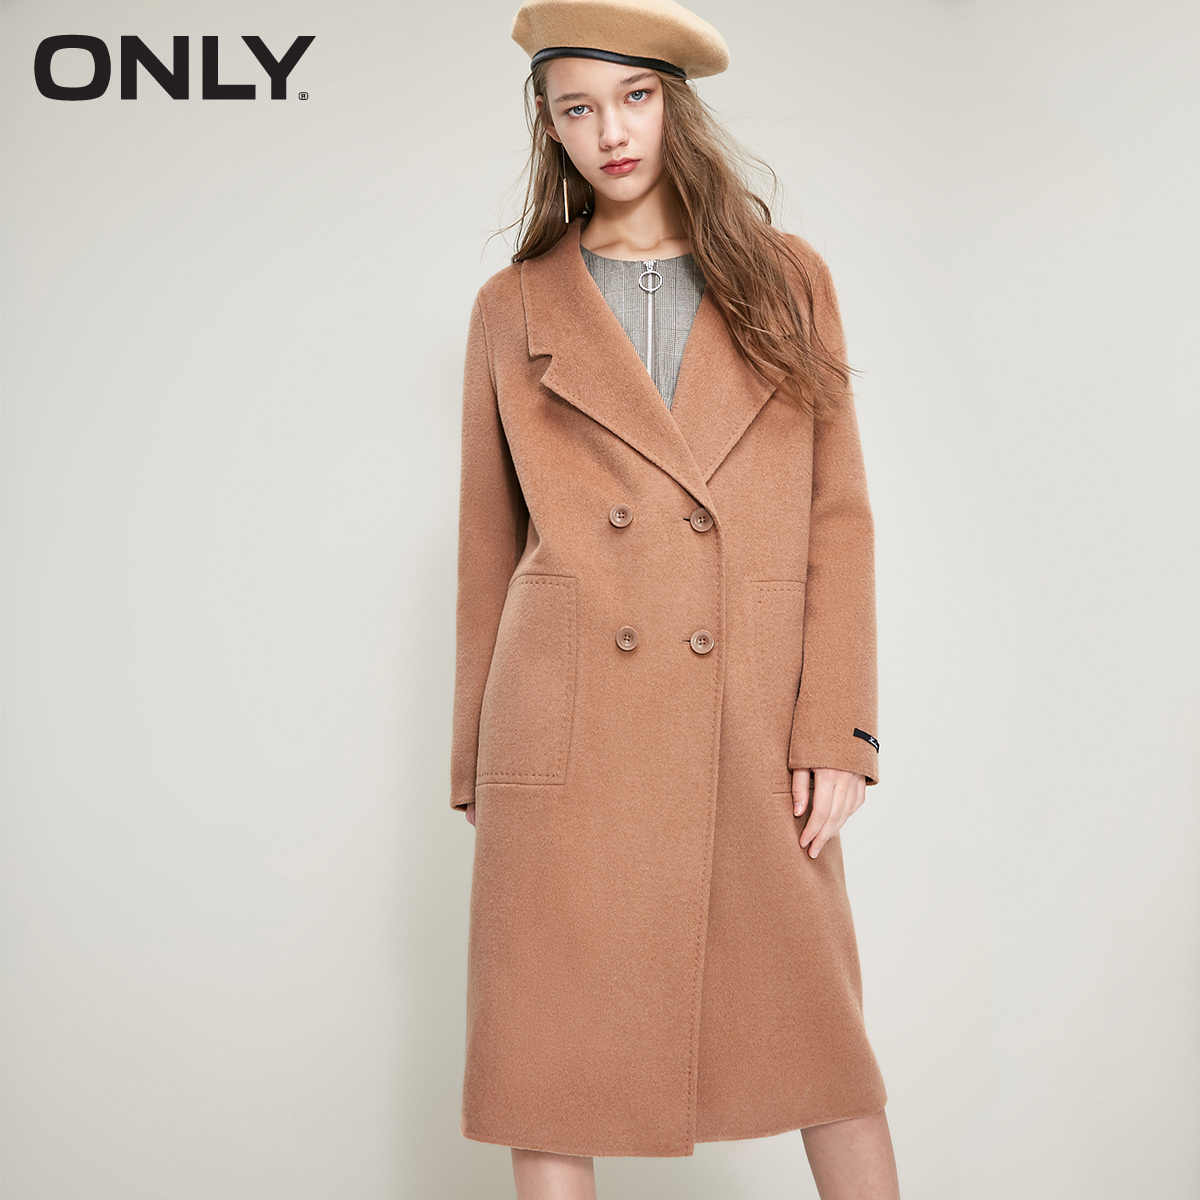 ONLY 2018 Women's Winter Long Double-faced Woolen Coat  | 11834S504